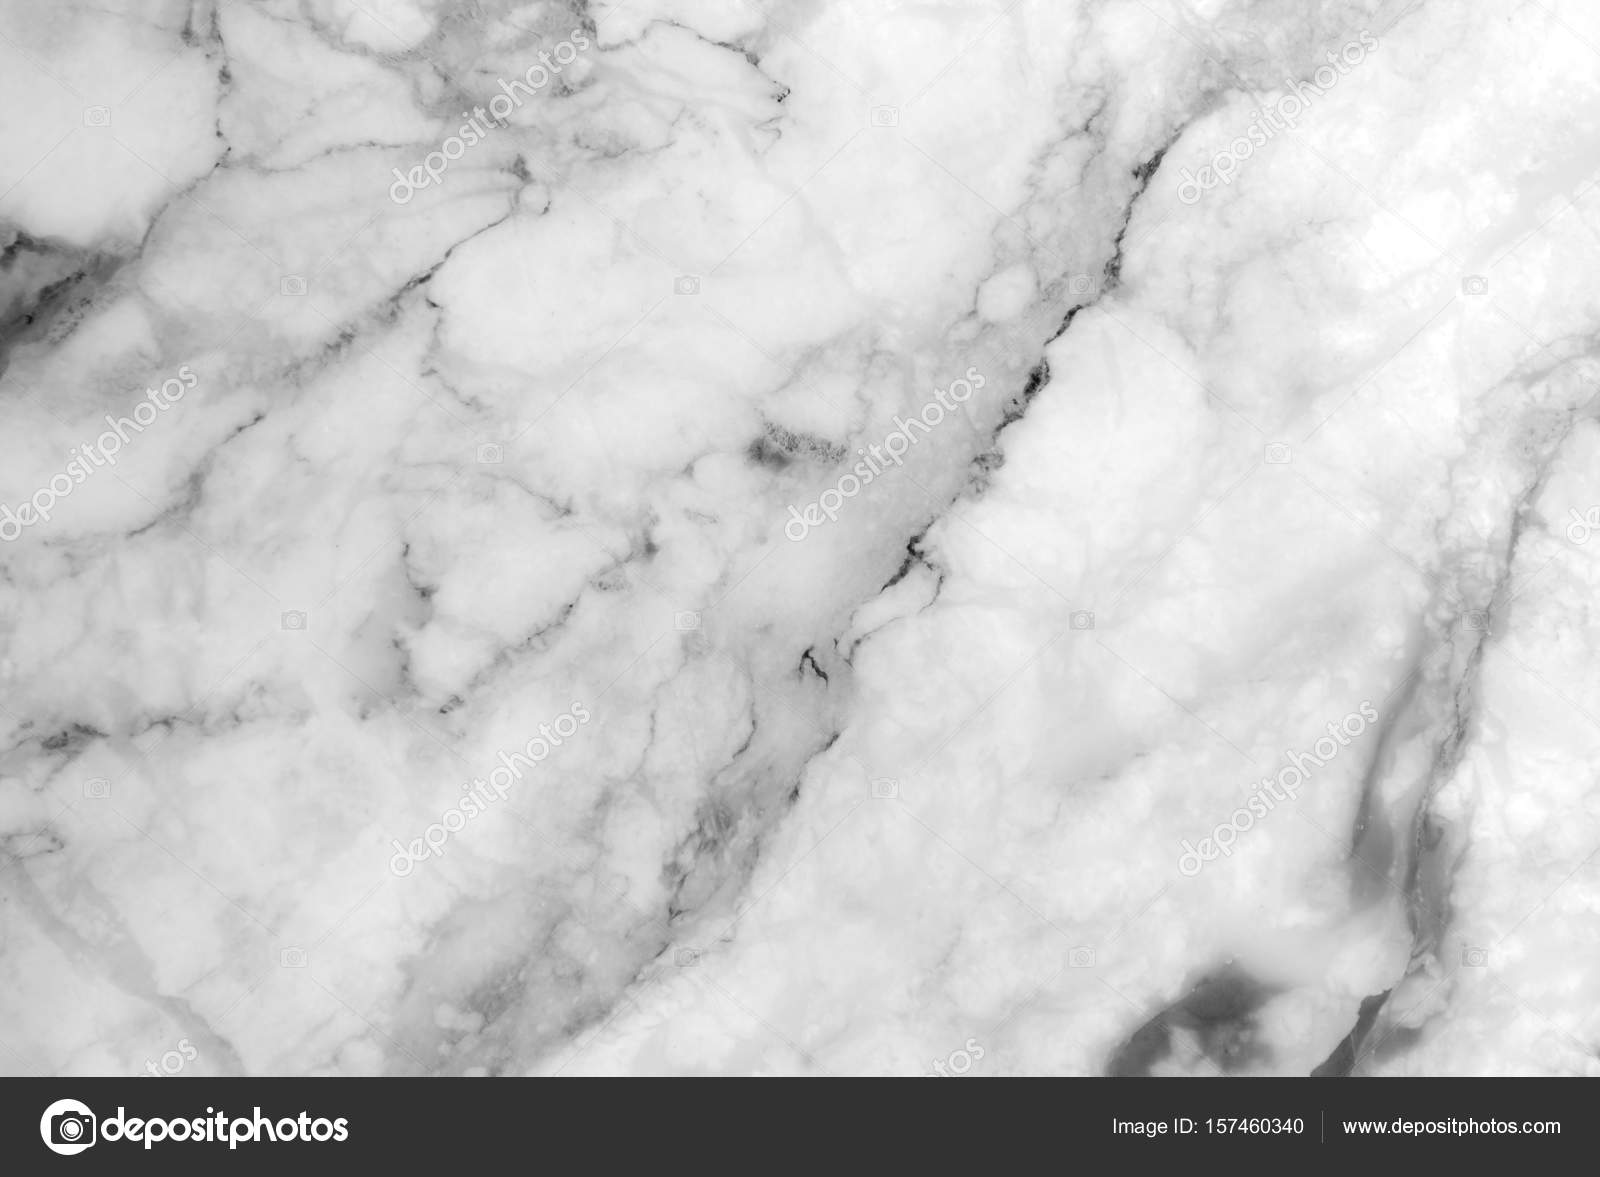 White Grey Marble White Grey Marble Texture Stock Photo C Aioonrak Gmail Com 157460340